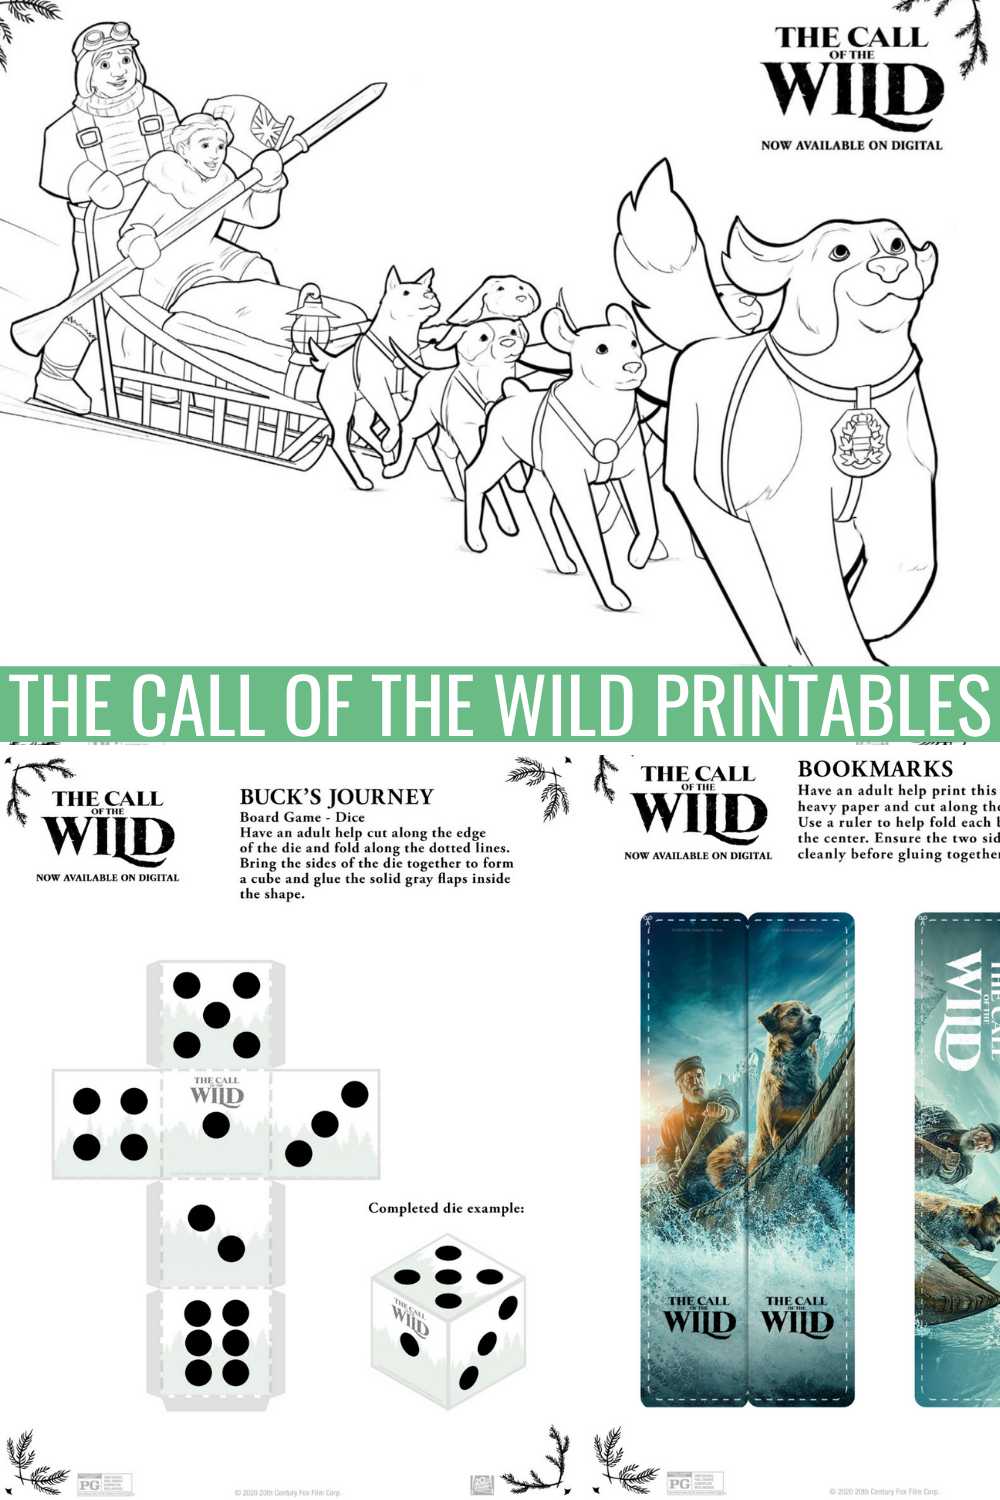 The Call of the wild printables